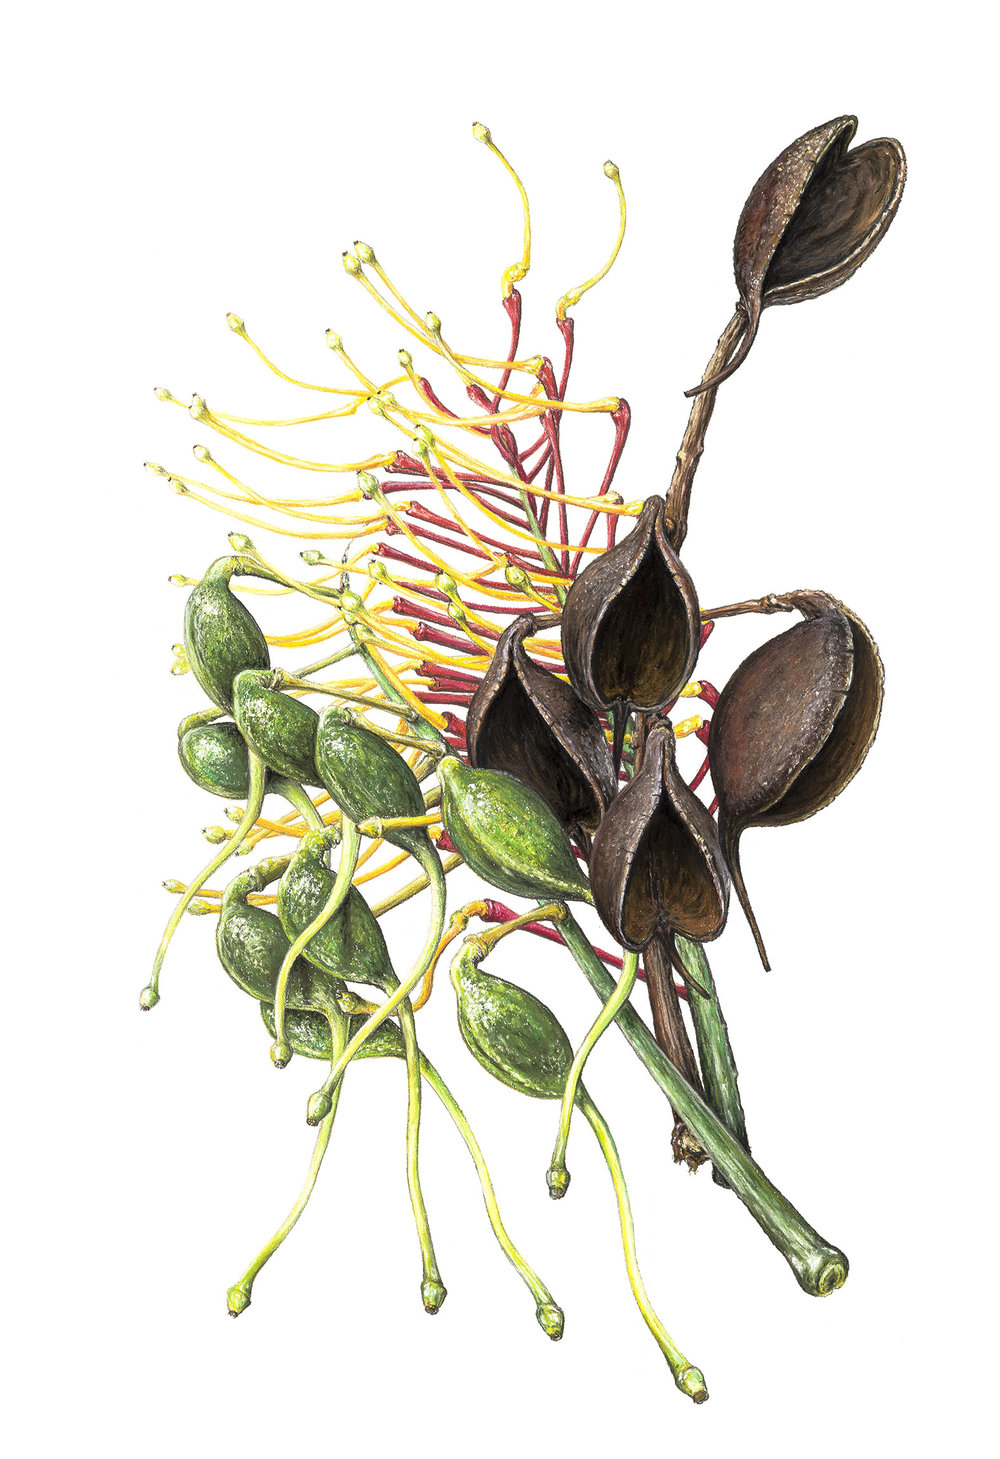 Grevillea Robusta pods  - 105cm x 75cm - pastel, charcoal, pencil on Arches paper